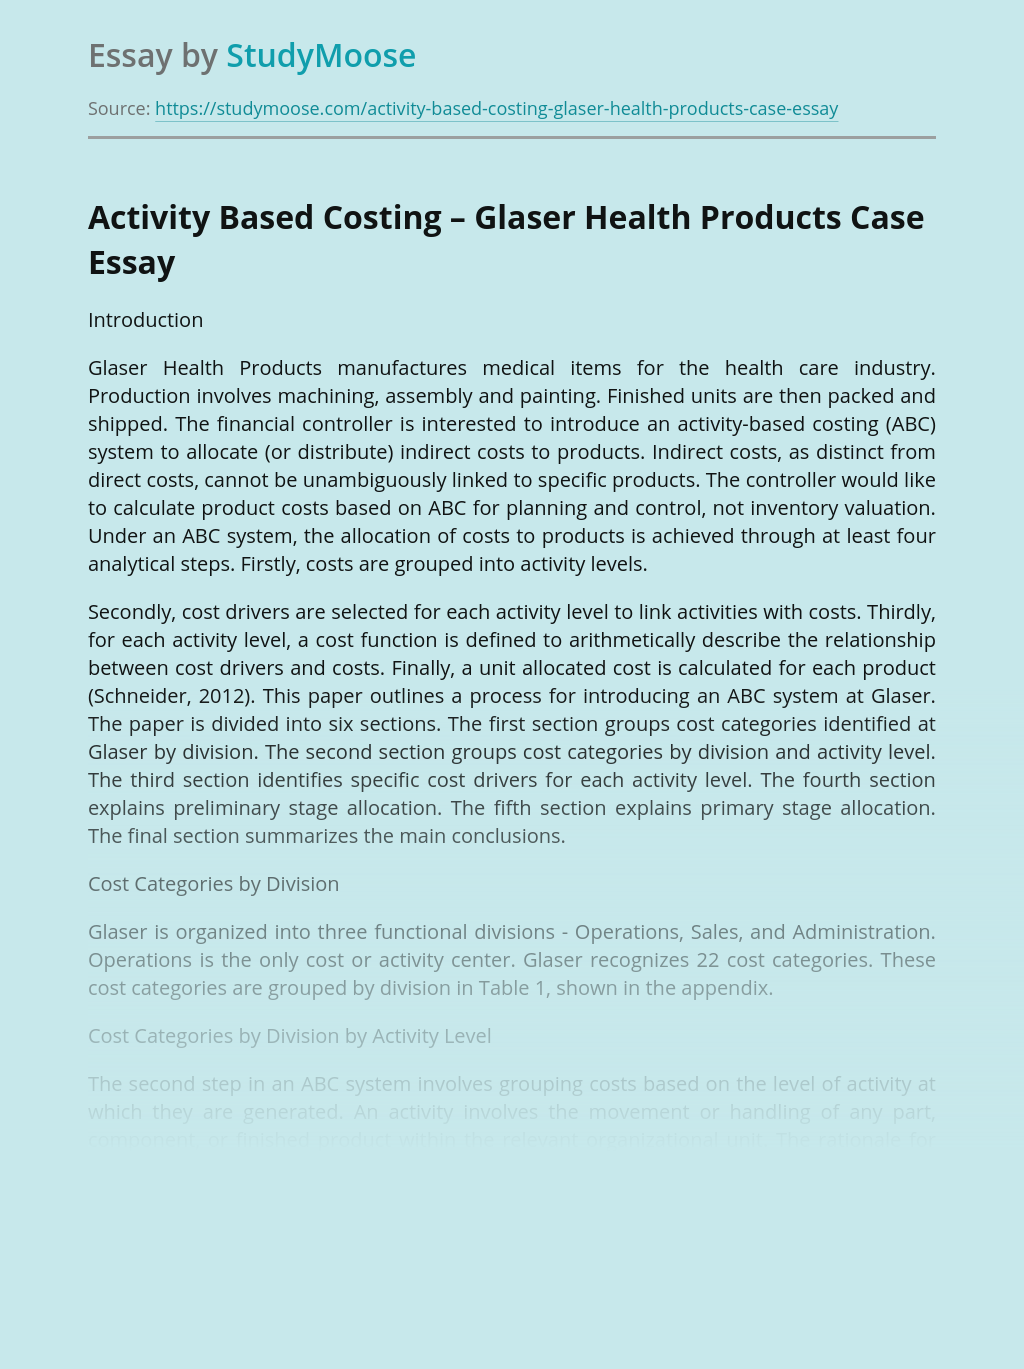 Activity Based Costing – Glaser Health Products Case